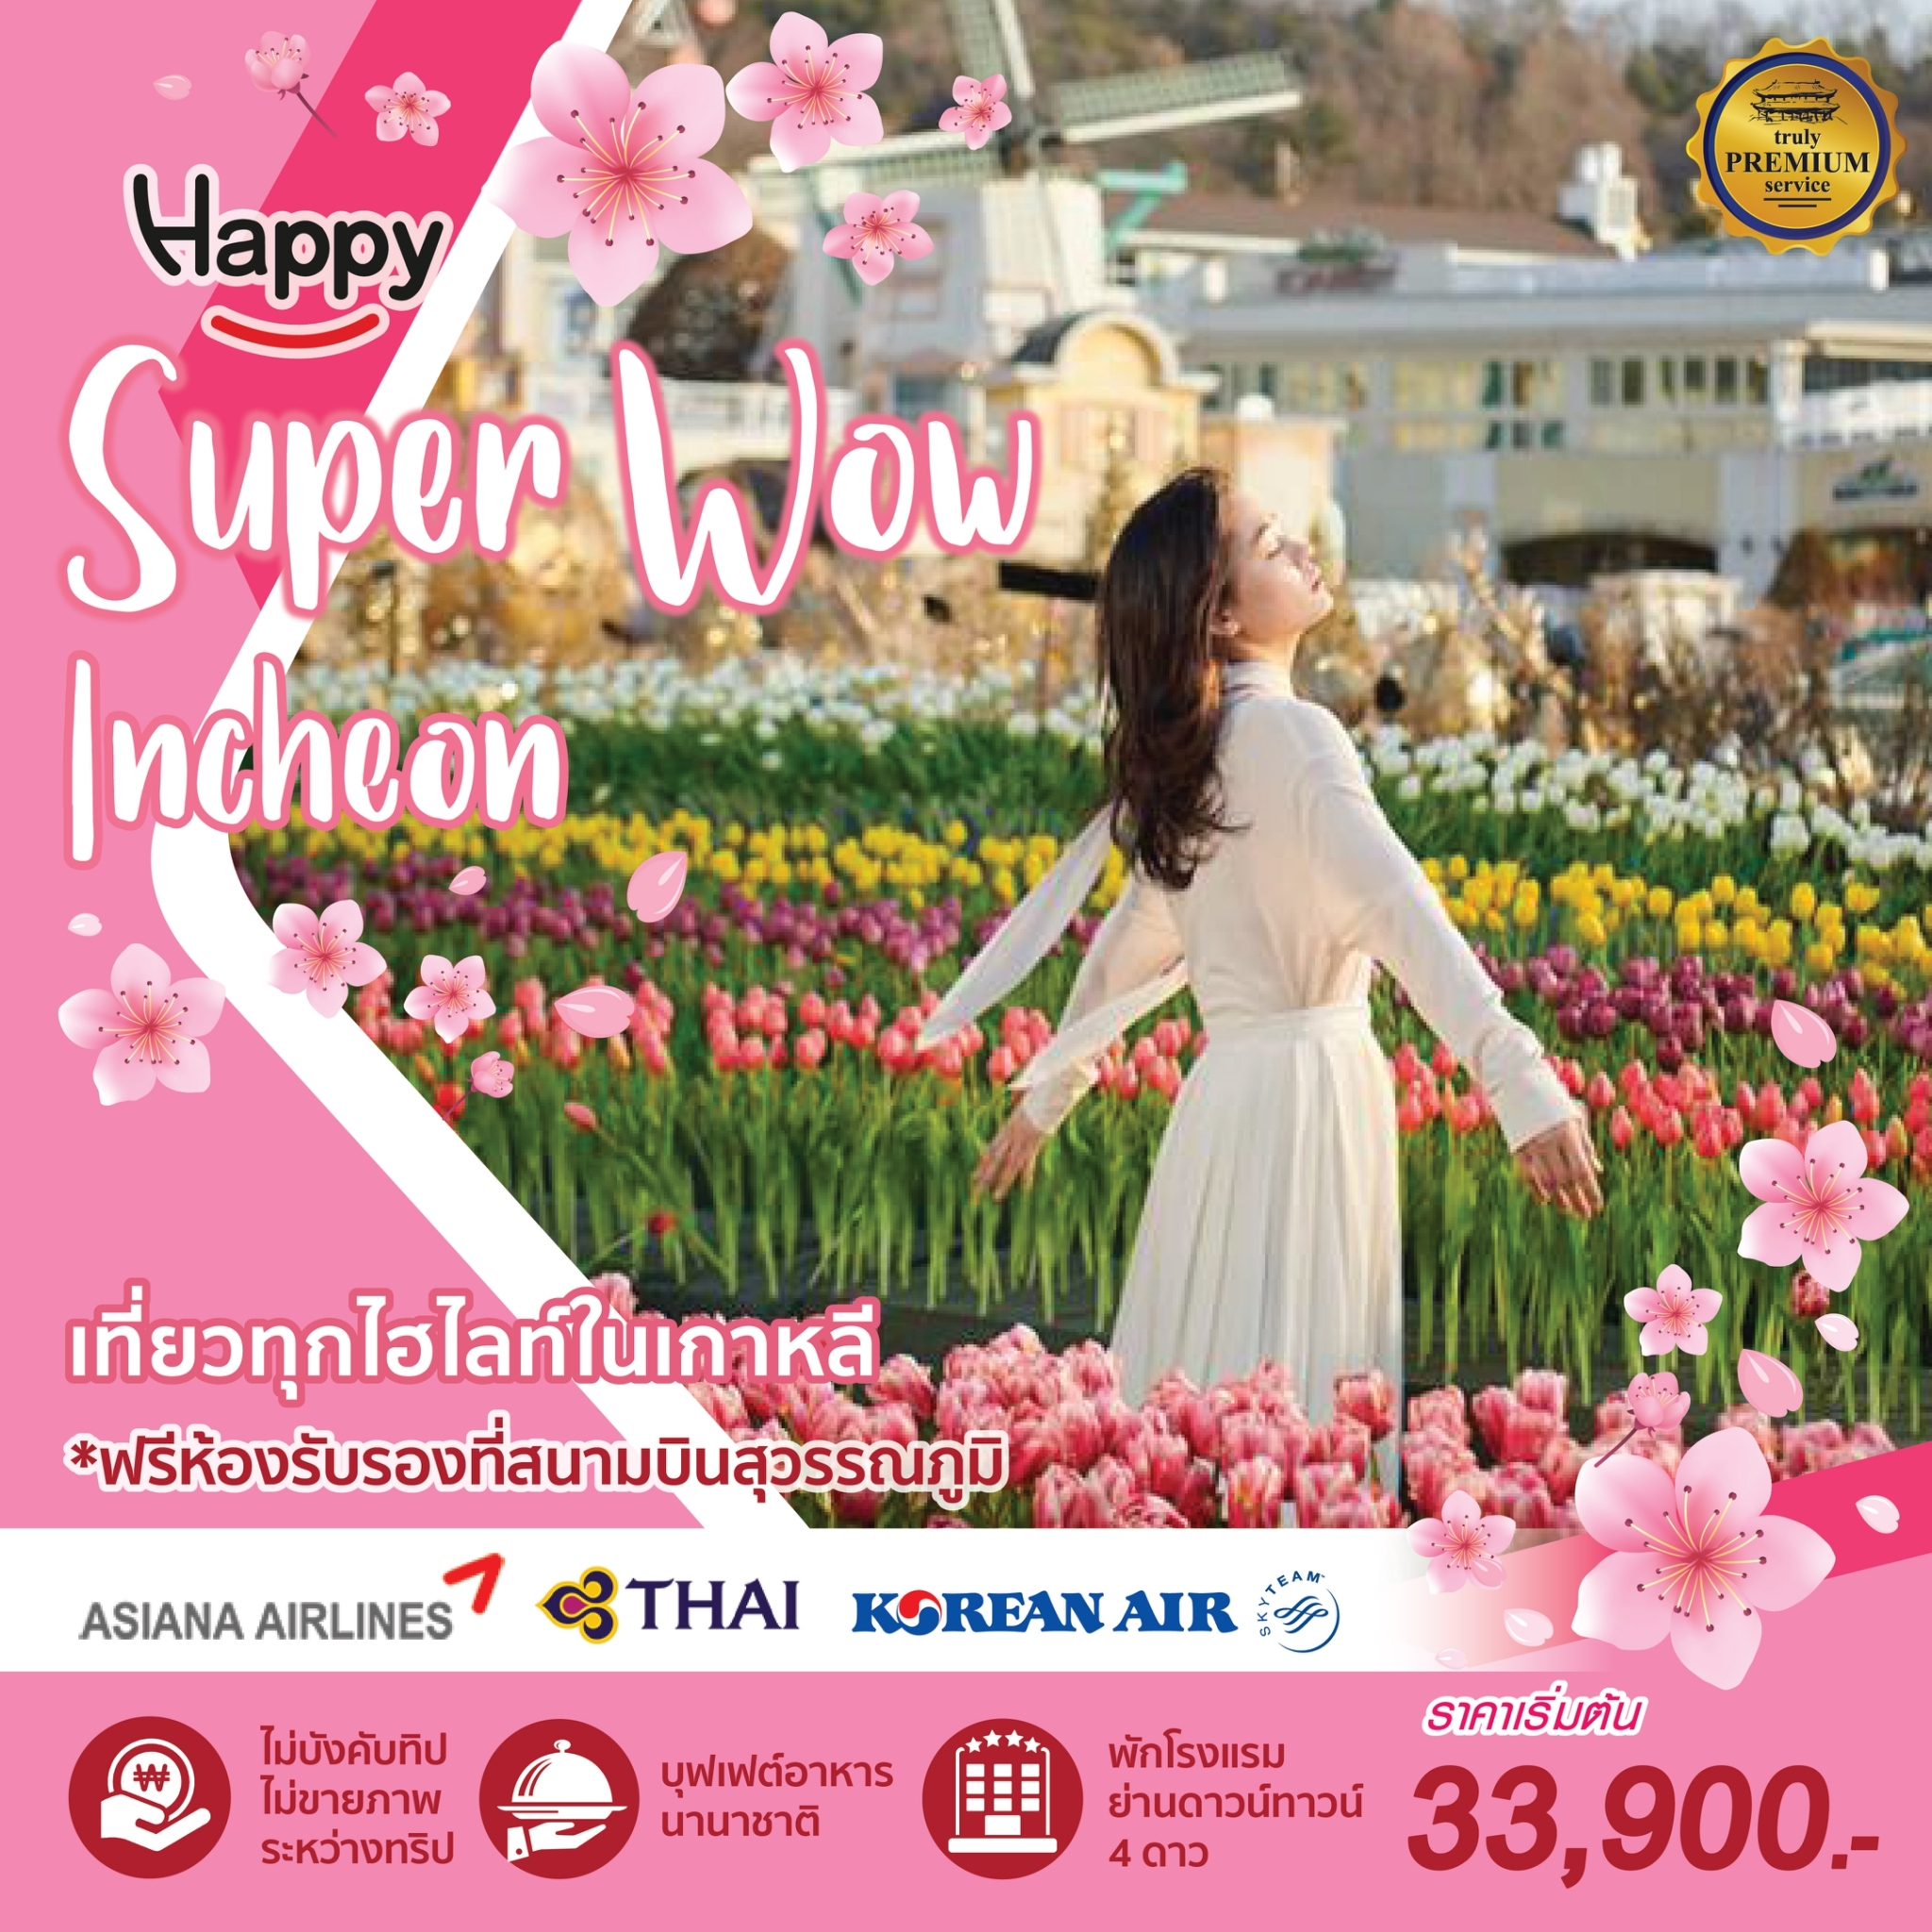 Happy Super Wow Spring